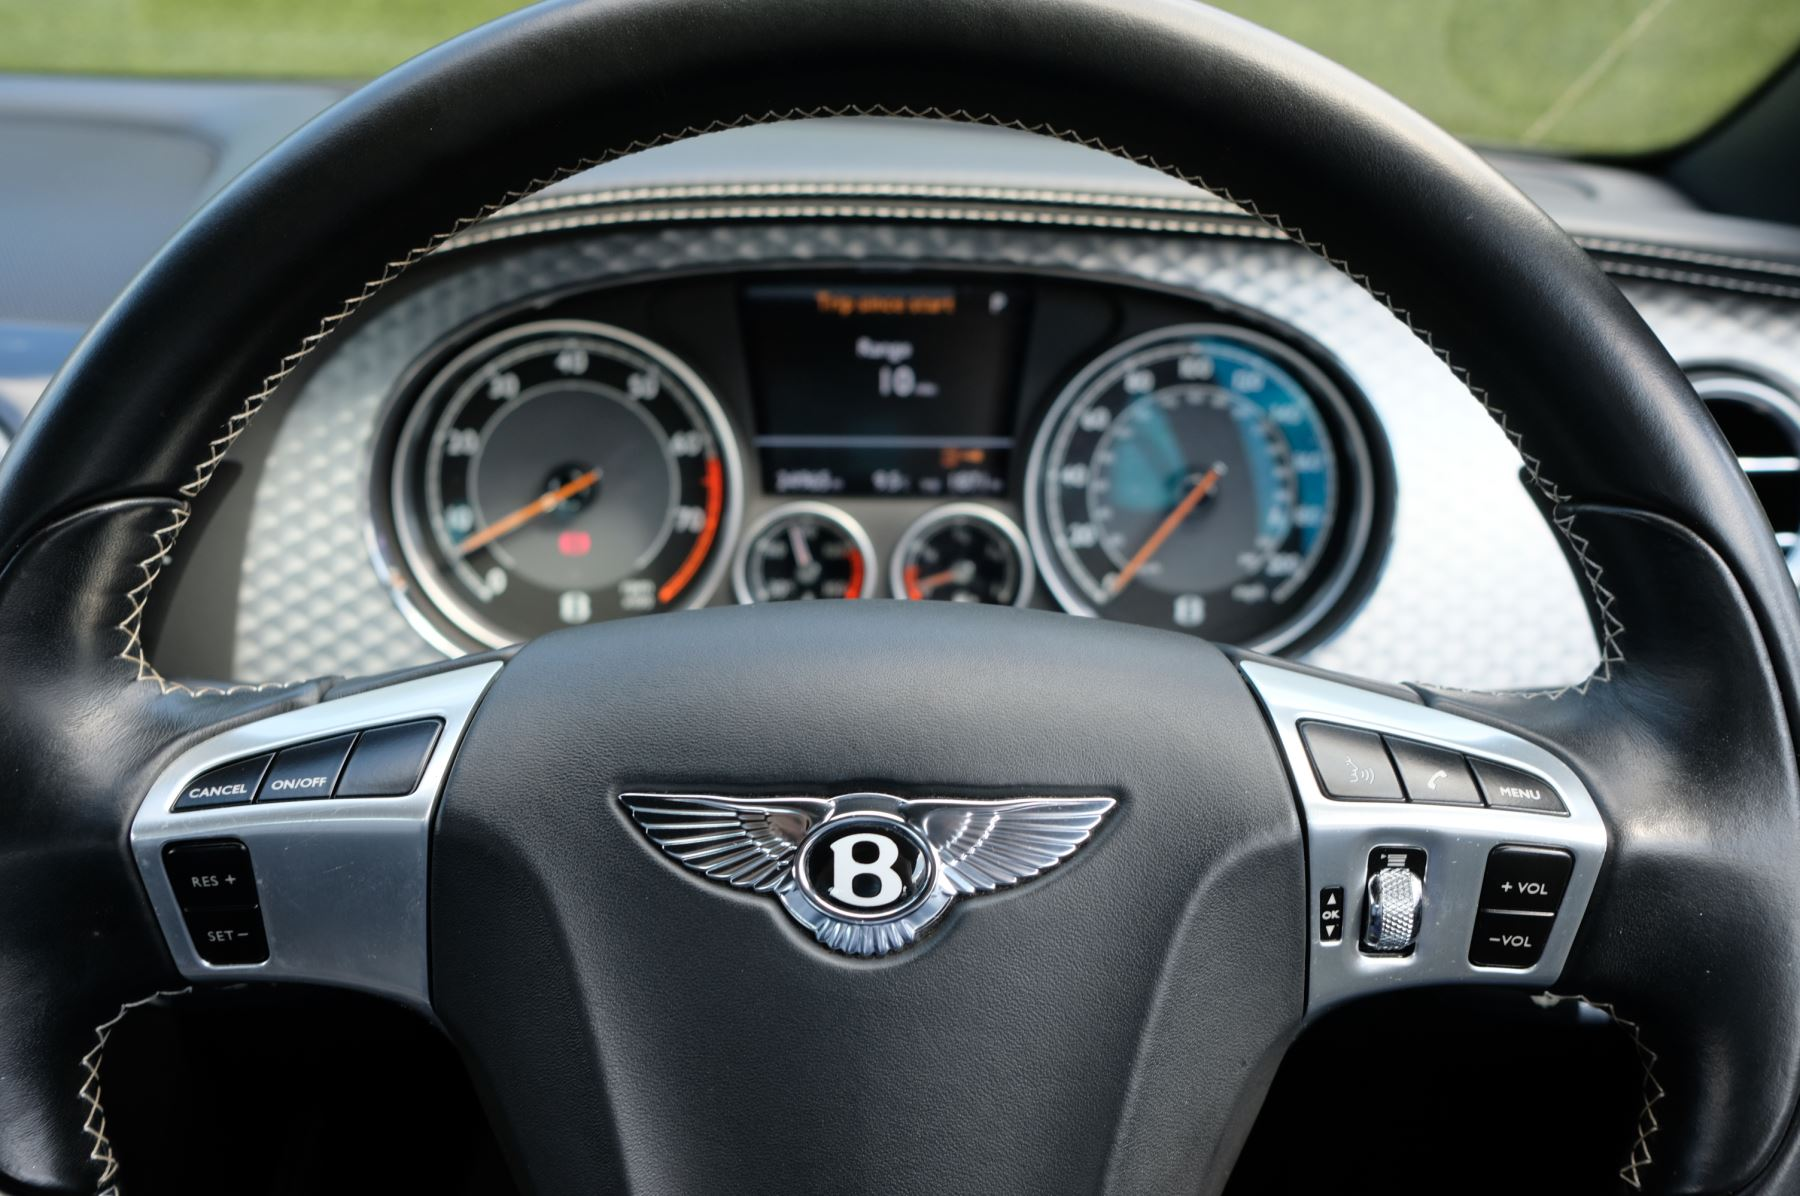 Bentley Continental GTC 4.0 V8 - Sports and Colour Specification image 14